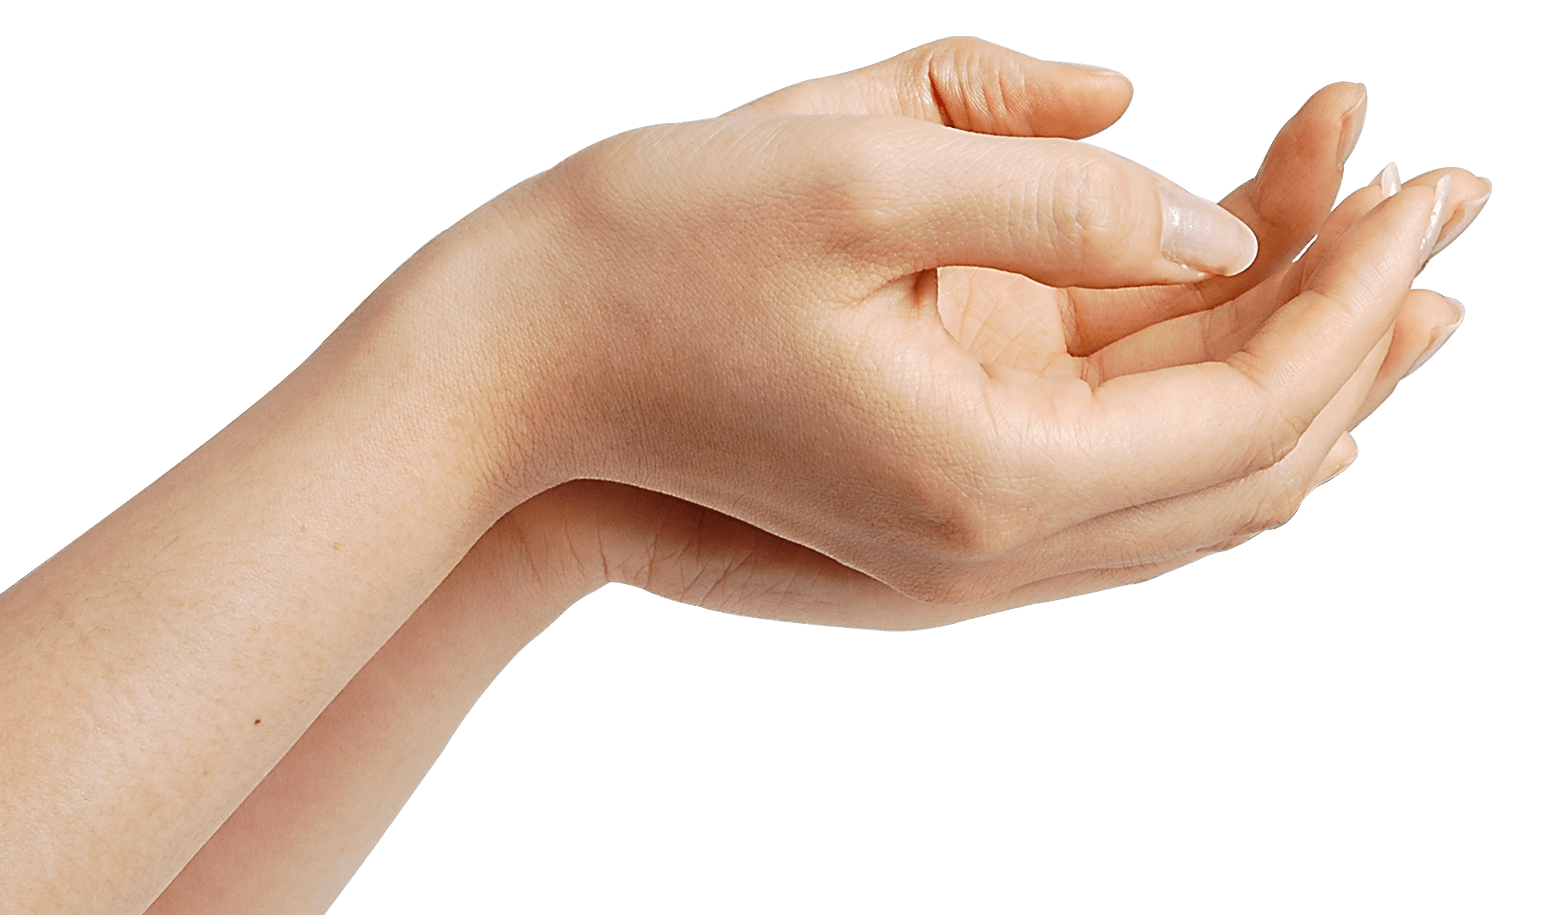 Skin clipart opened hand. Hands waiting transparent png